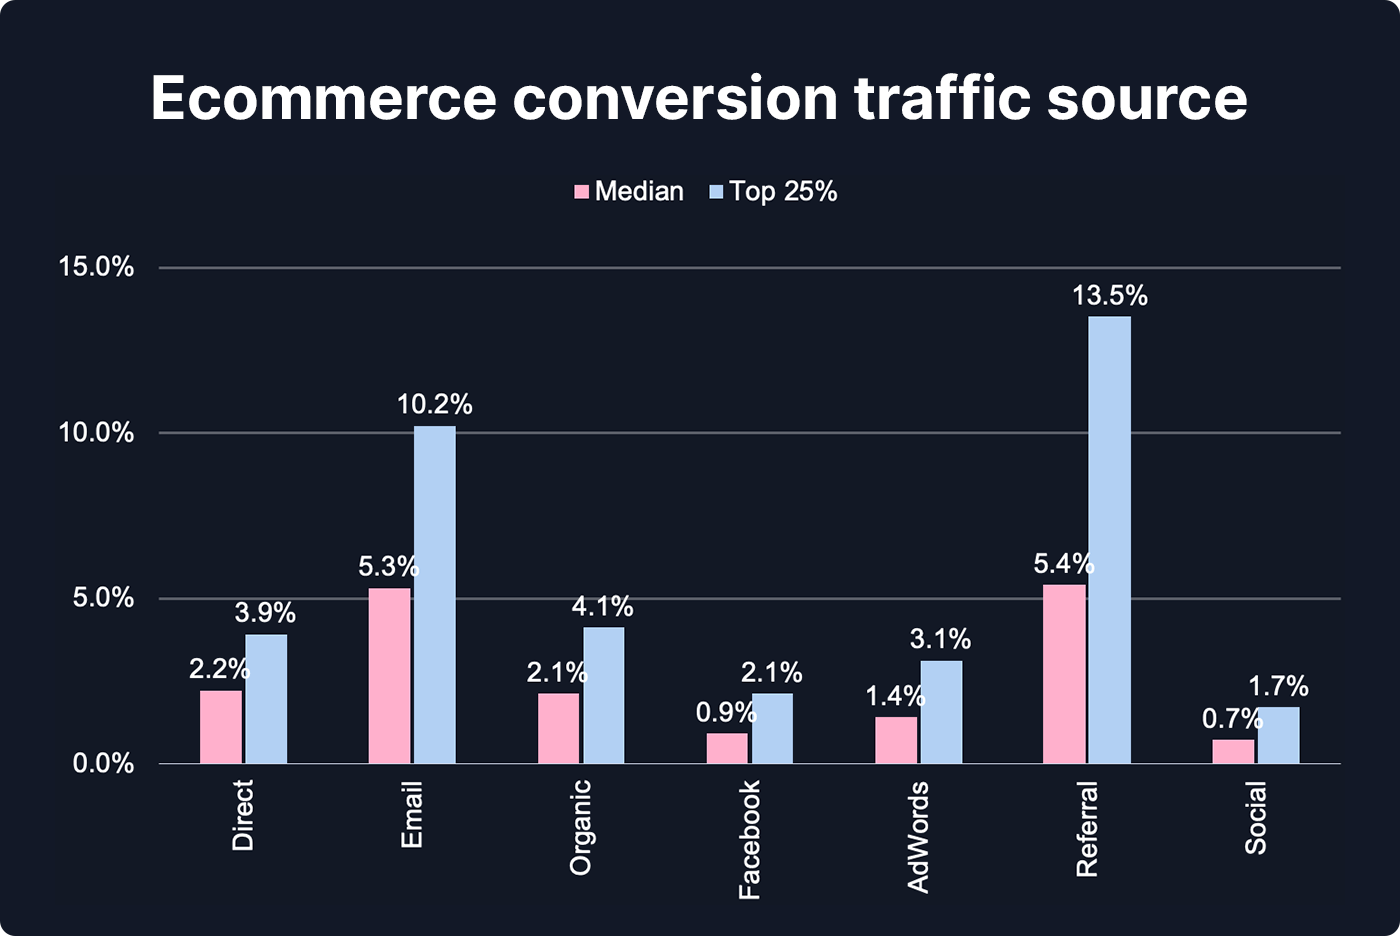 Chart showing ecommerce conversion traffic source